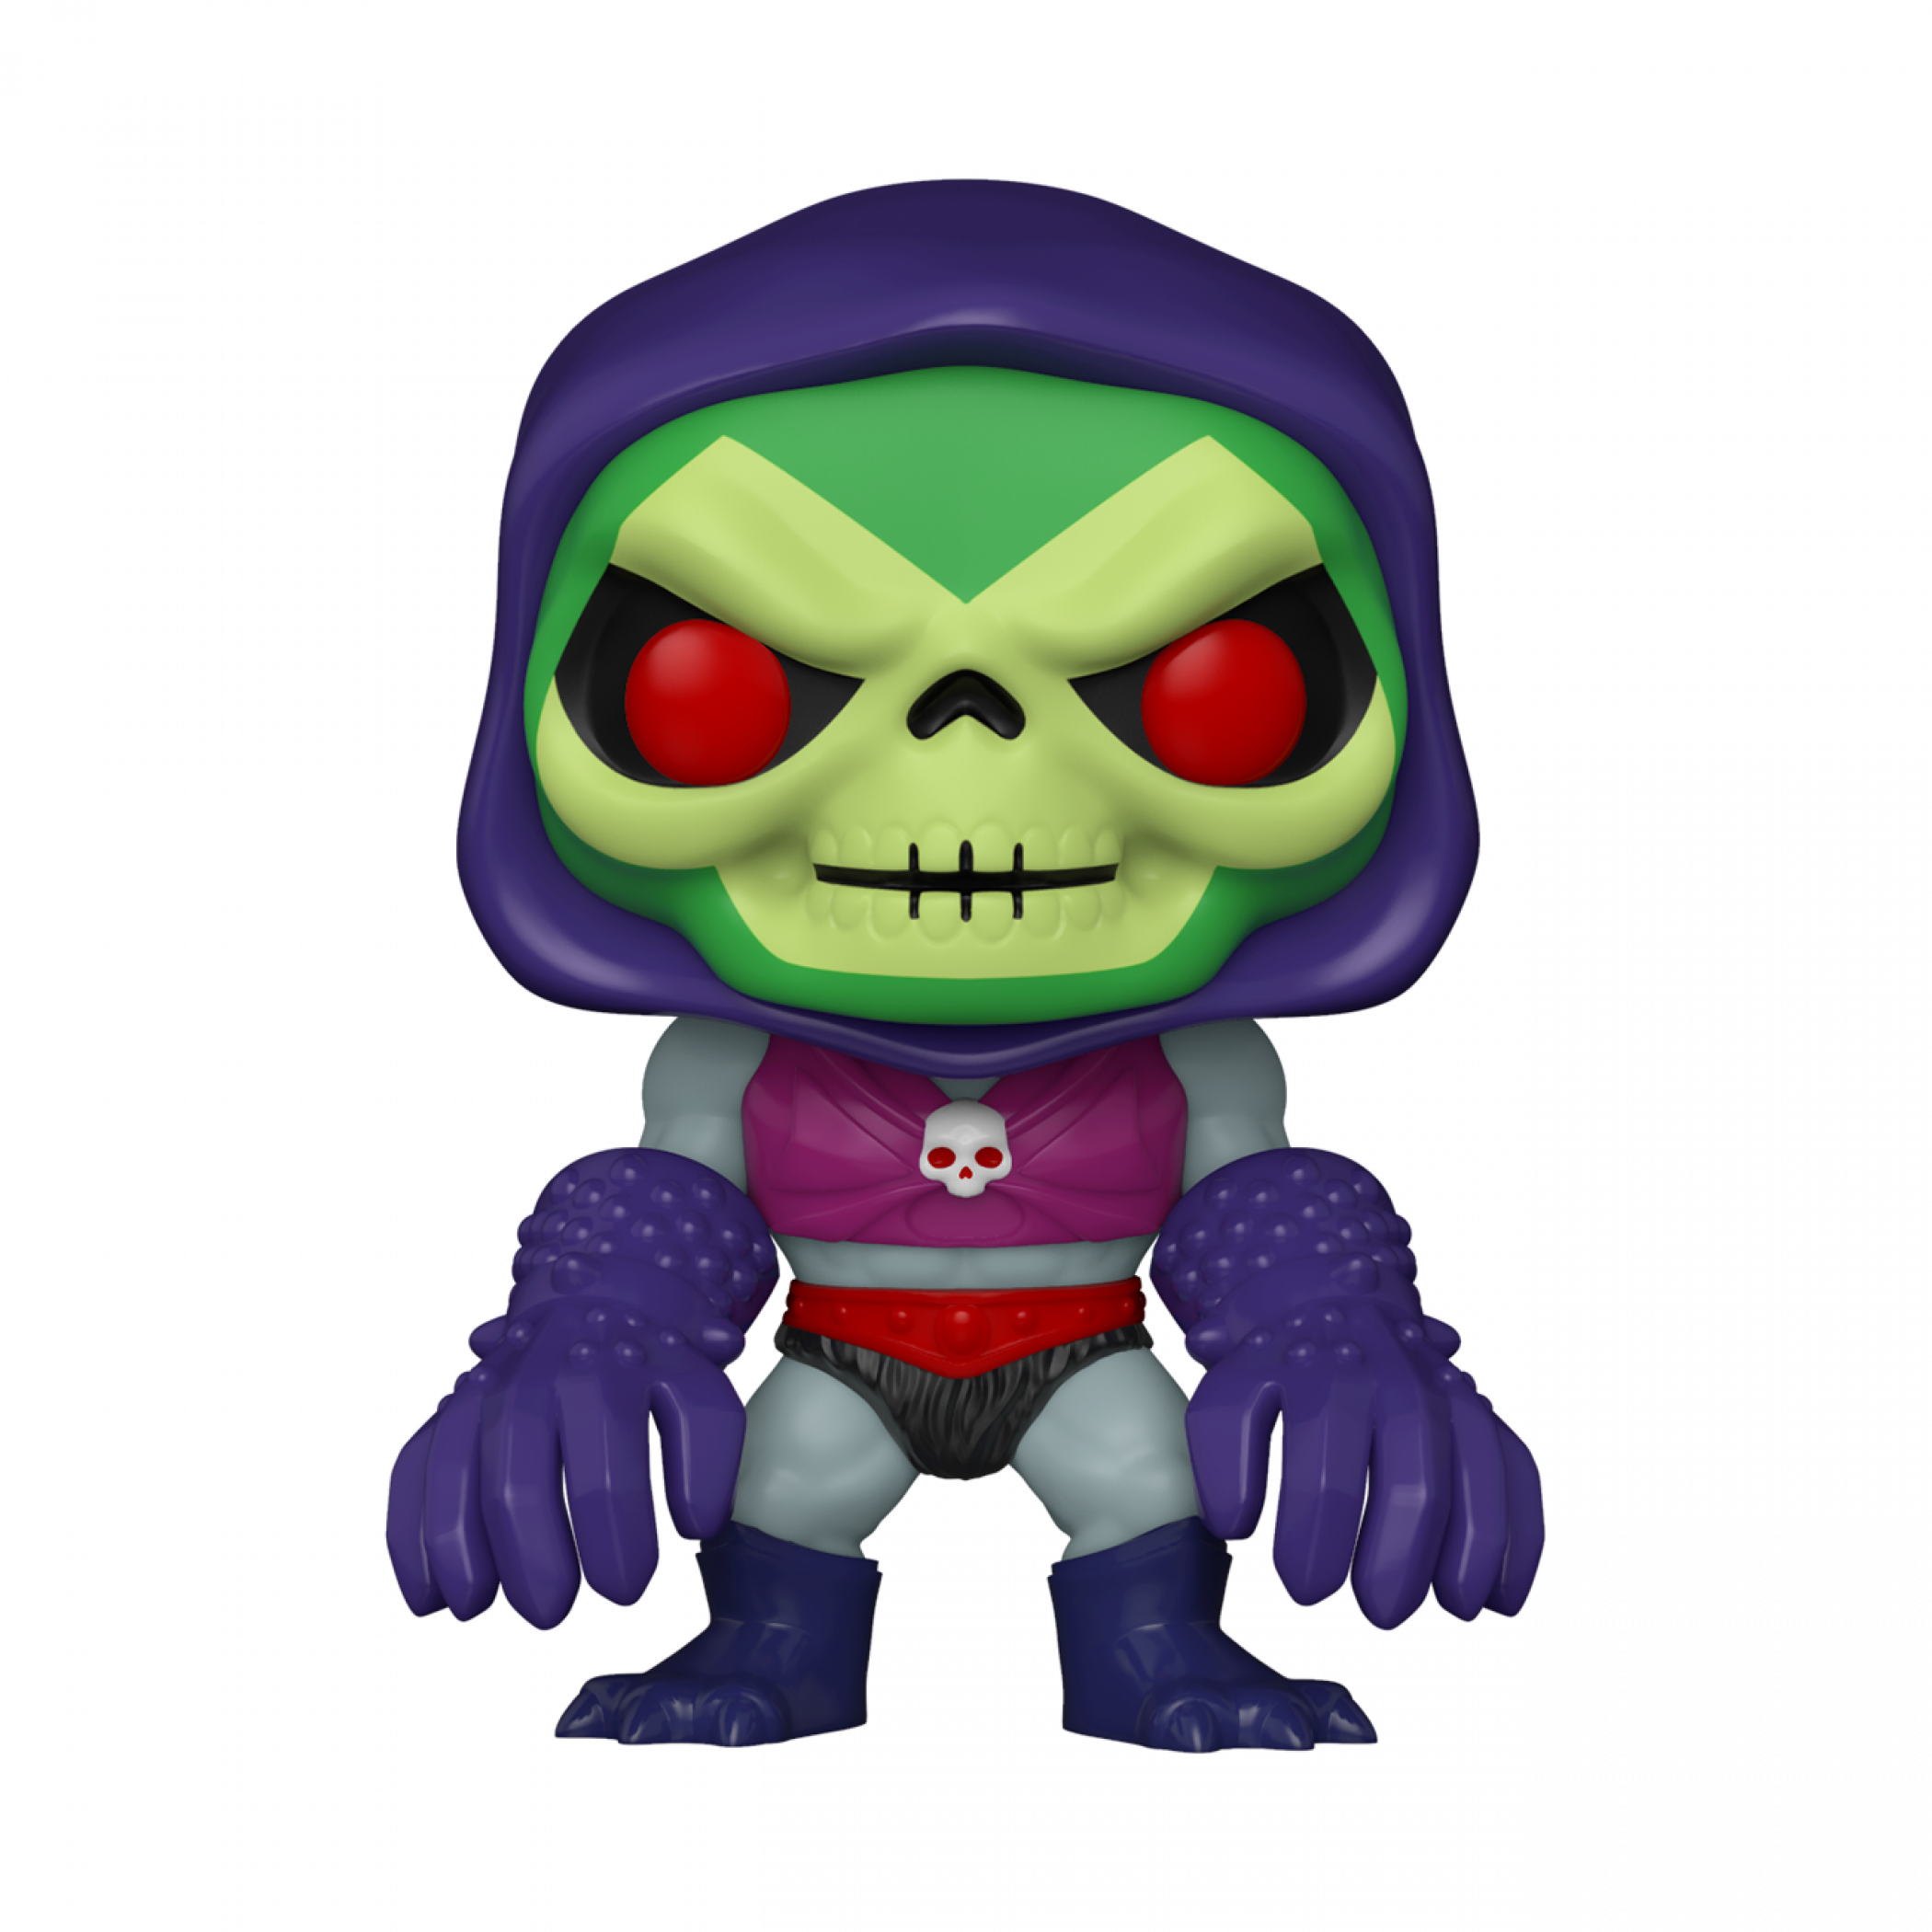 Skeletor with Terror Claws Masters of the Universe Funko Pop! Vinyl Figure